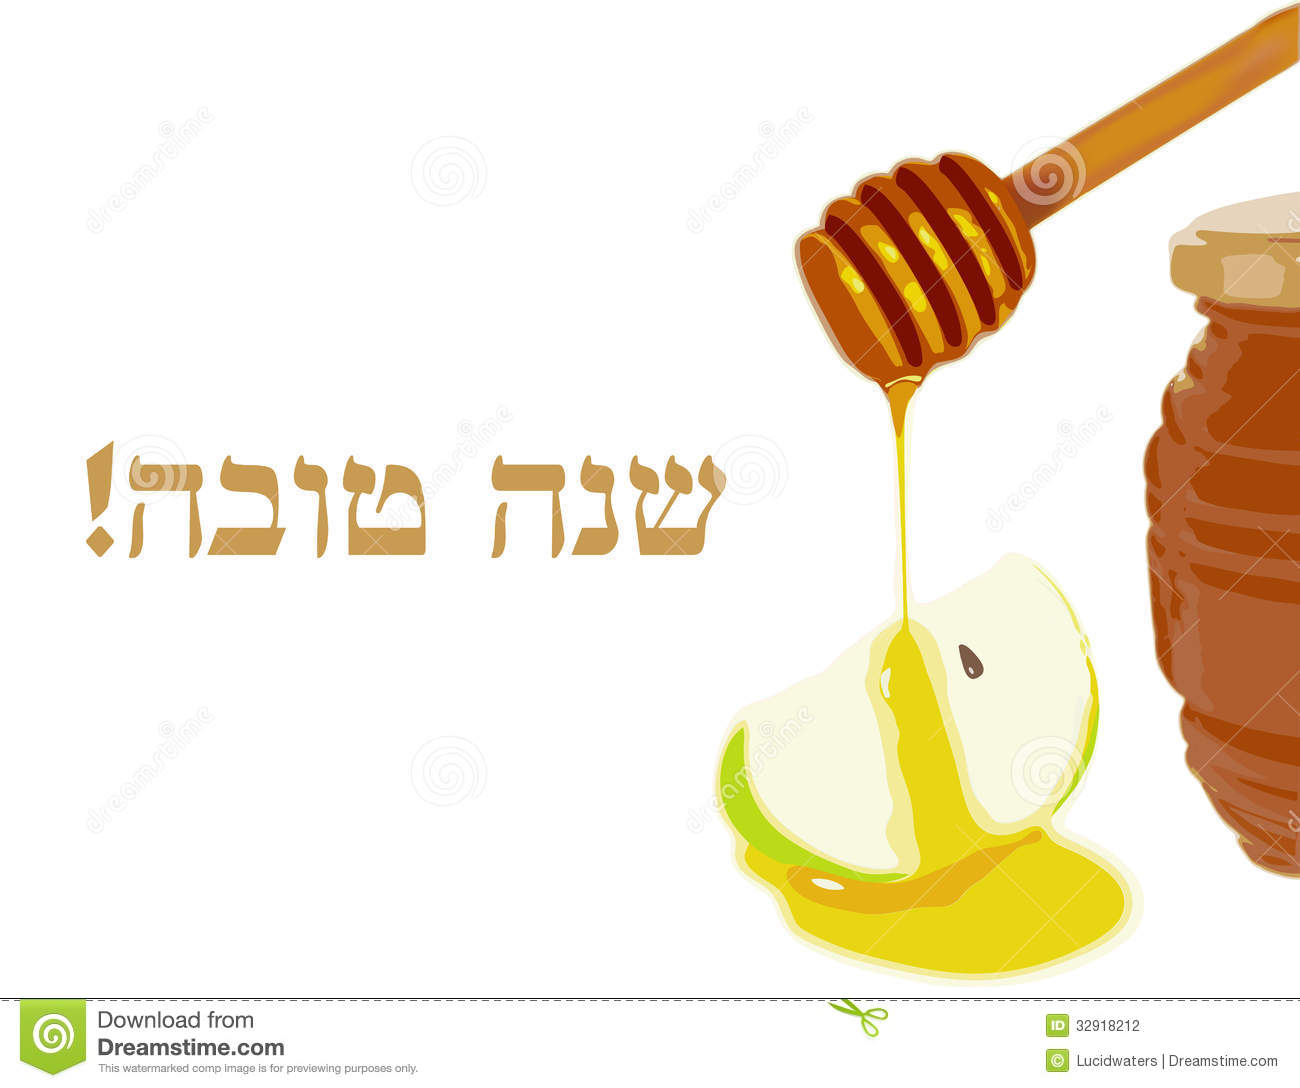 50 best rosh hashanah images on askideas rosh hashanah greetings hebrew text with apple and honey illustration m4hsunfo